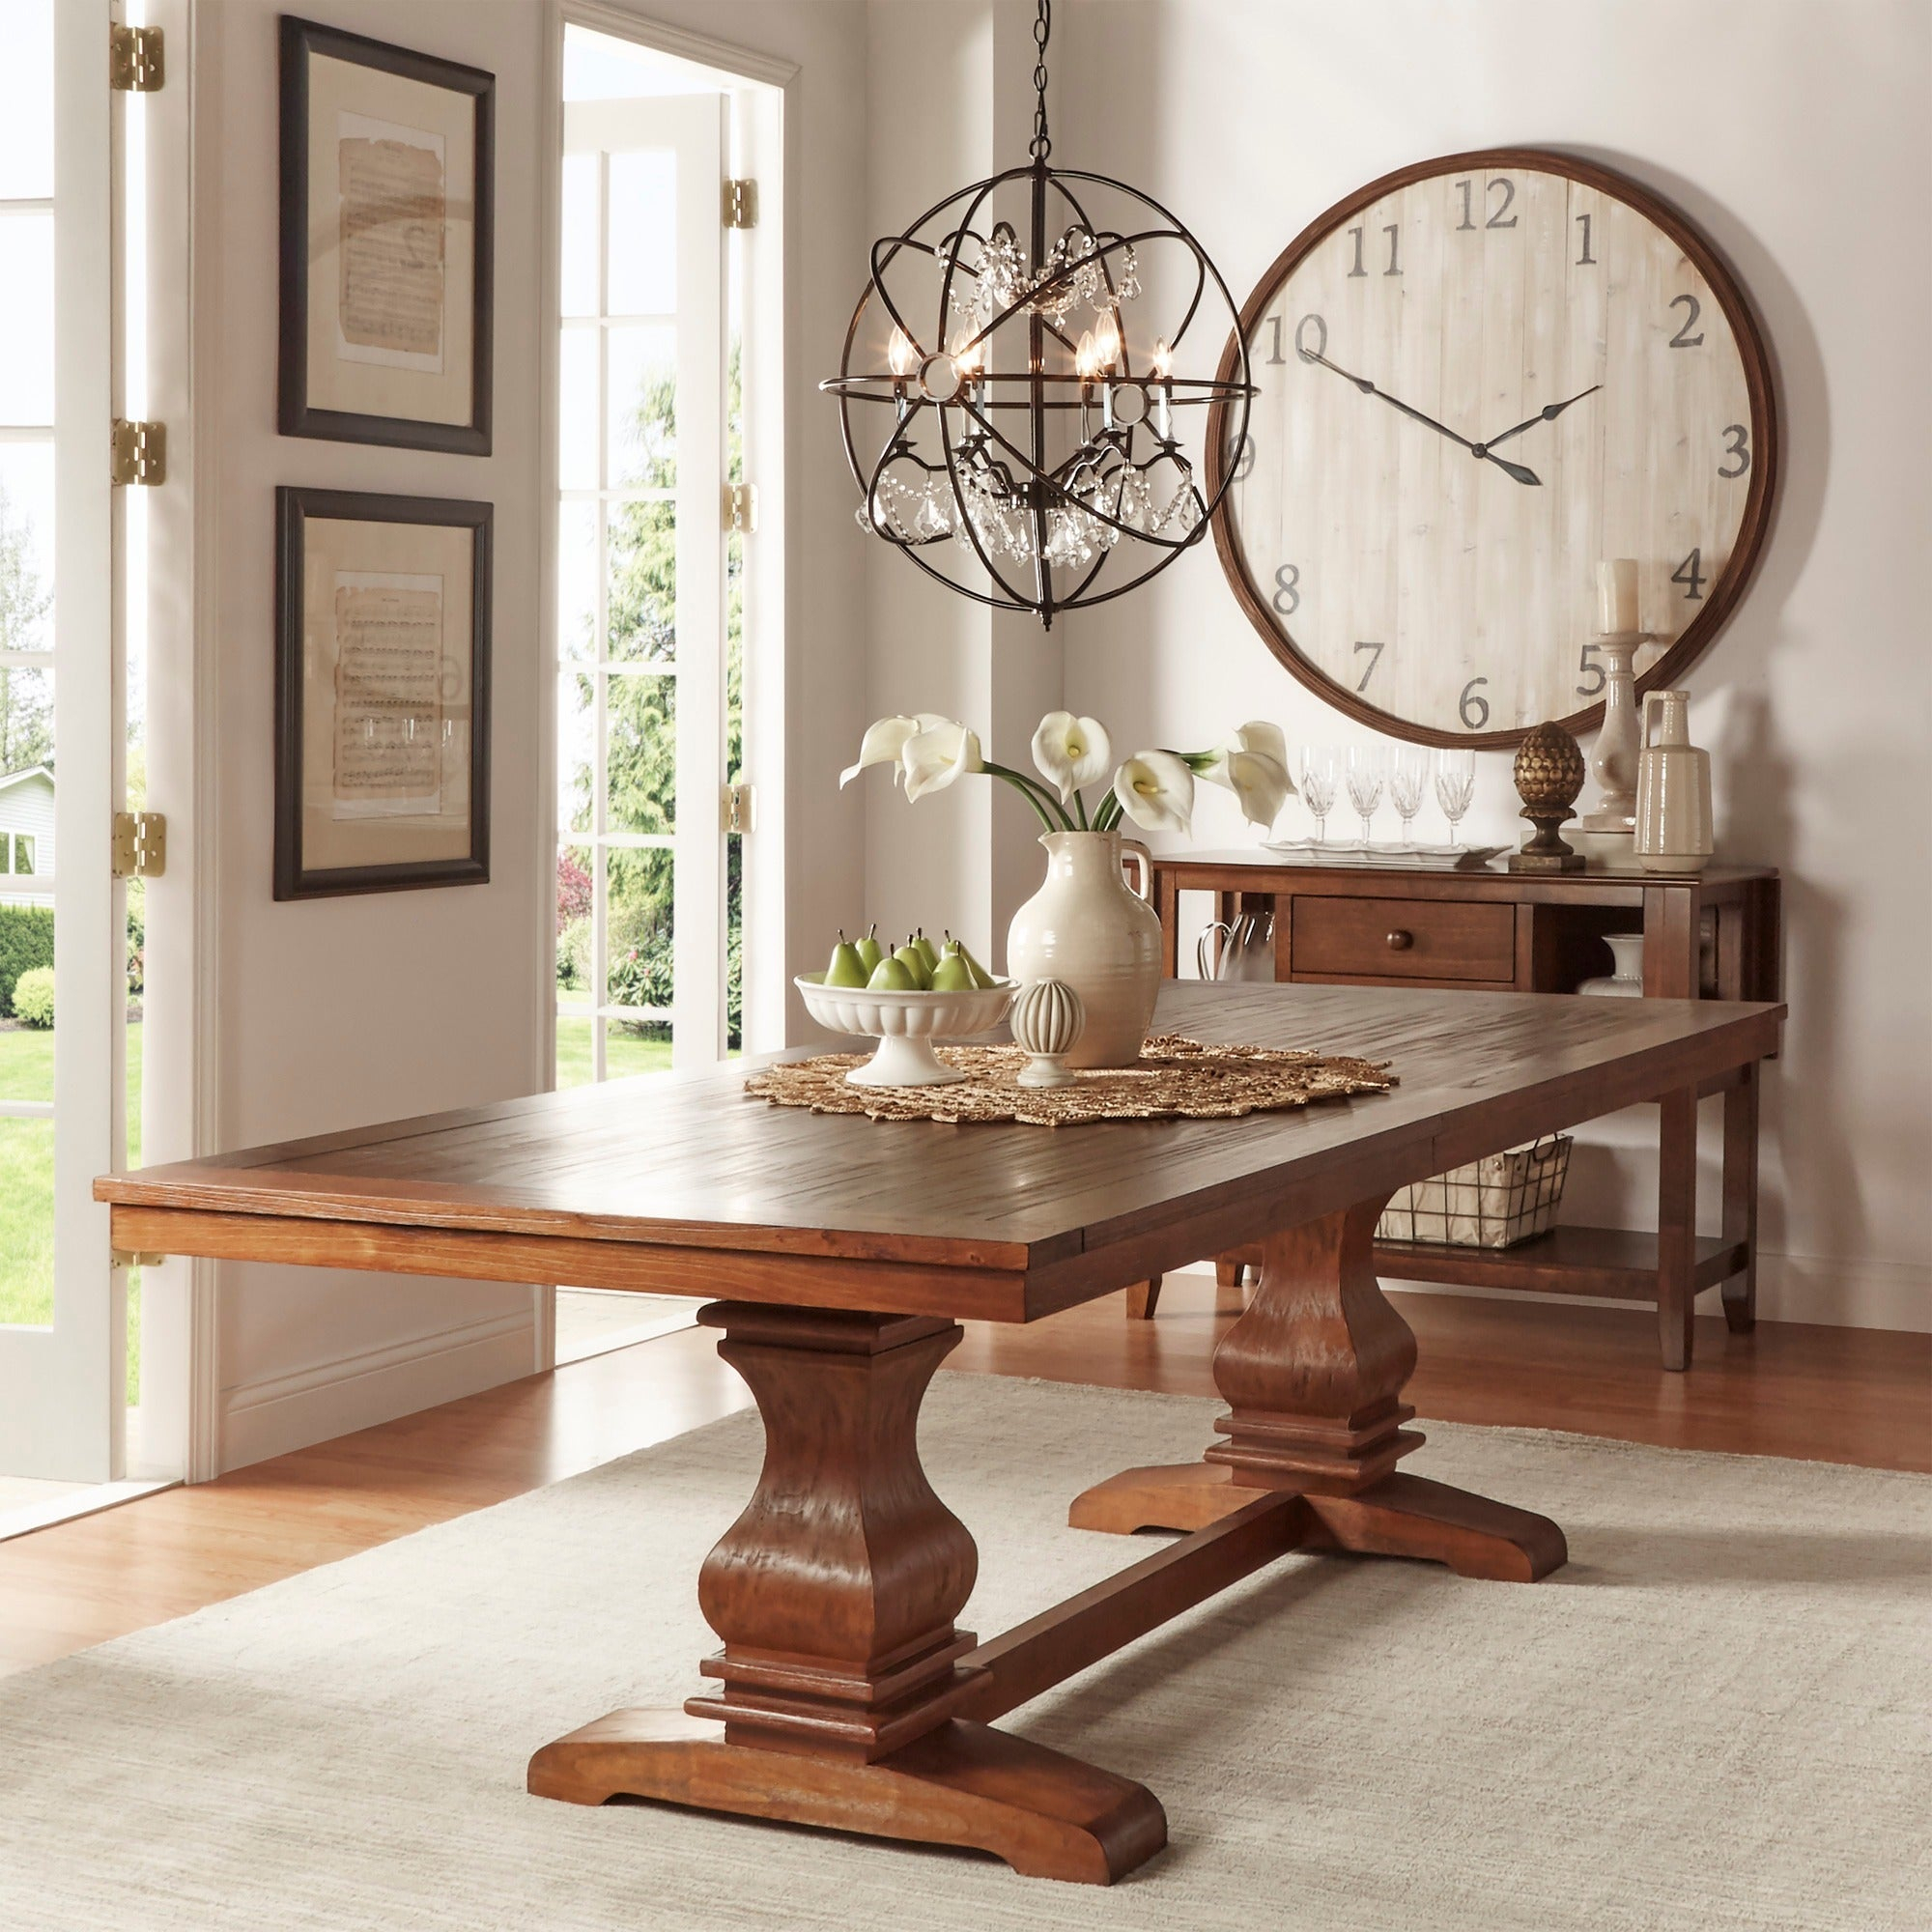 Atelier Burnished Brown Pedestal Extending Dining Tableinspire Q Classic Pertaining To Most Current Alfresco Brown Banks Pedestal Extending Dining Tables (View 15 of 25)